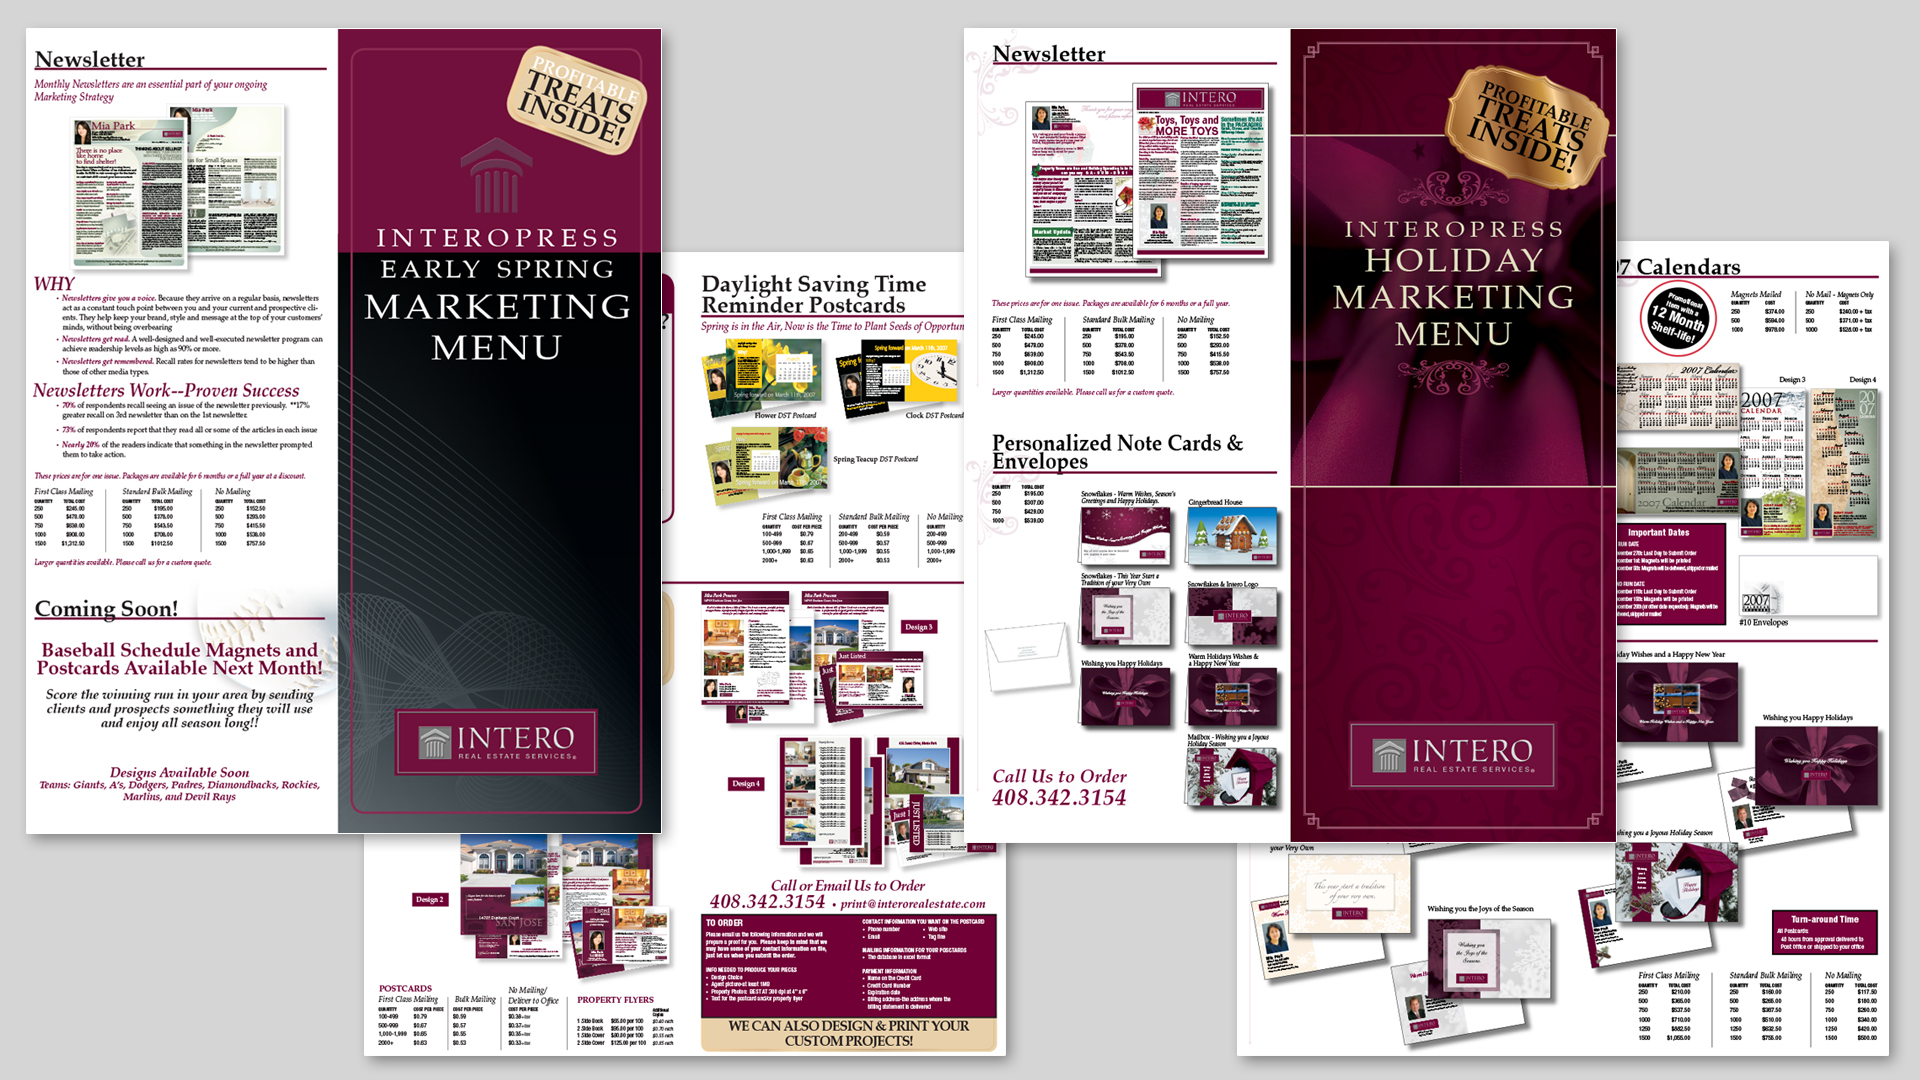 Interopress Marketing Materials